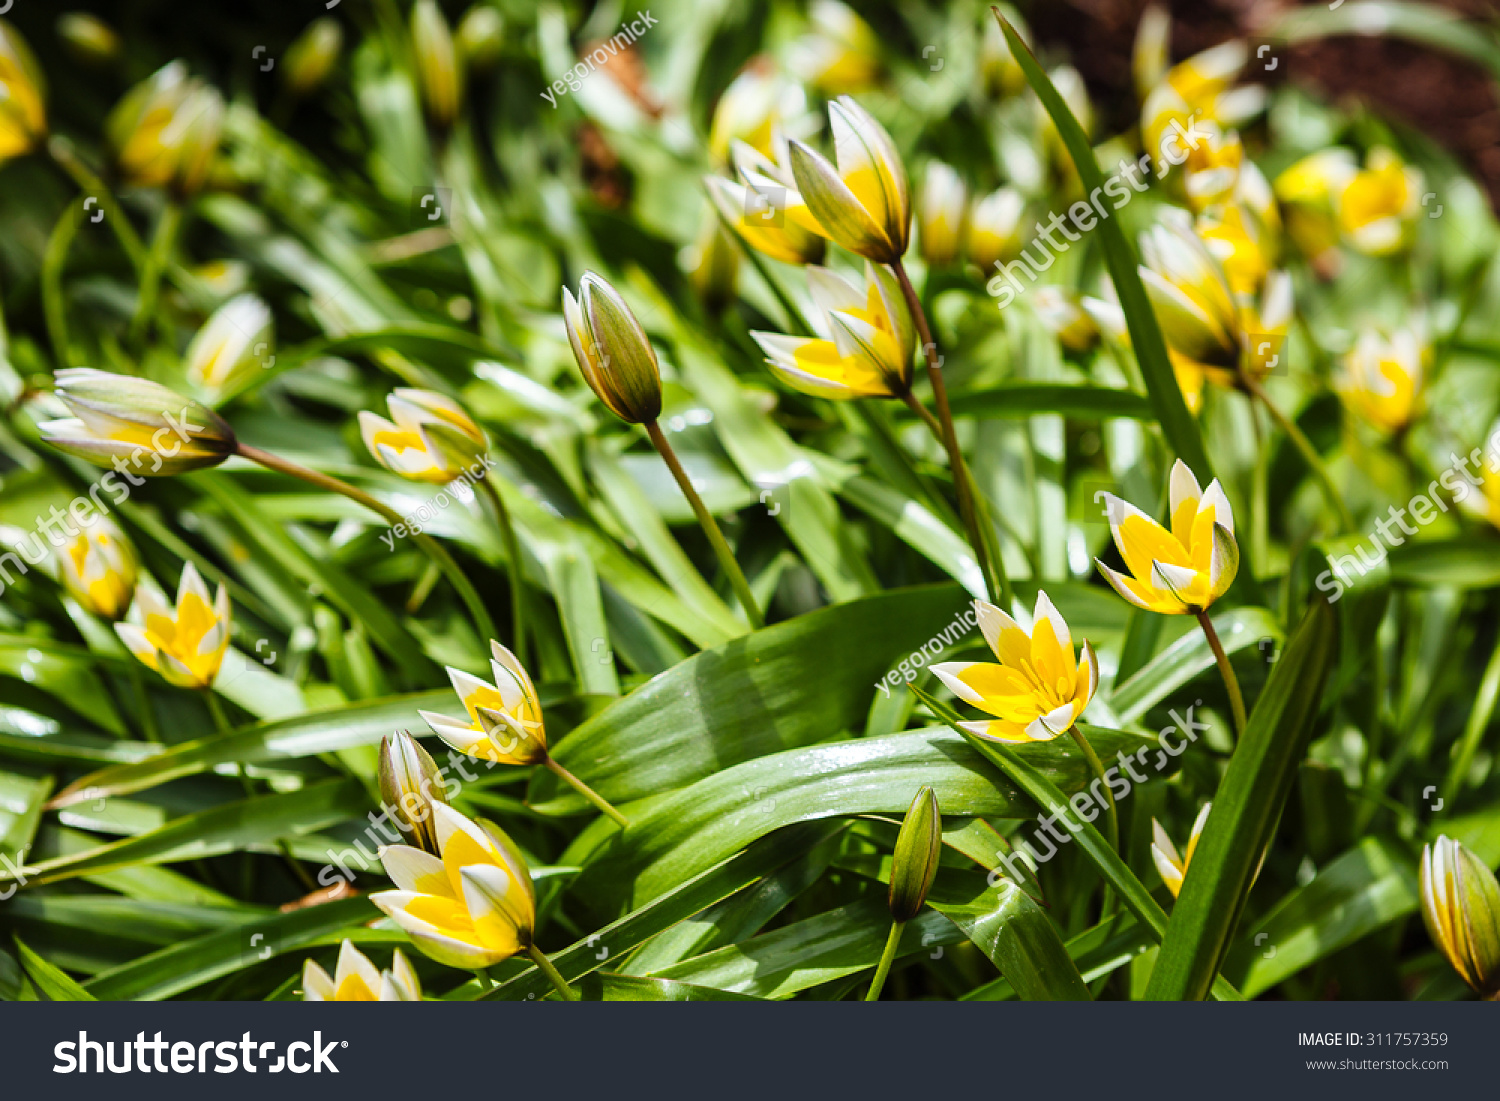 Flowers Daffodil Yellow Spring Flowering Bulb Plants In The